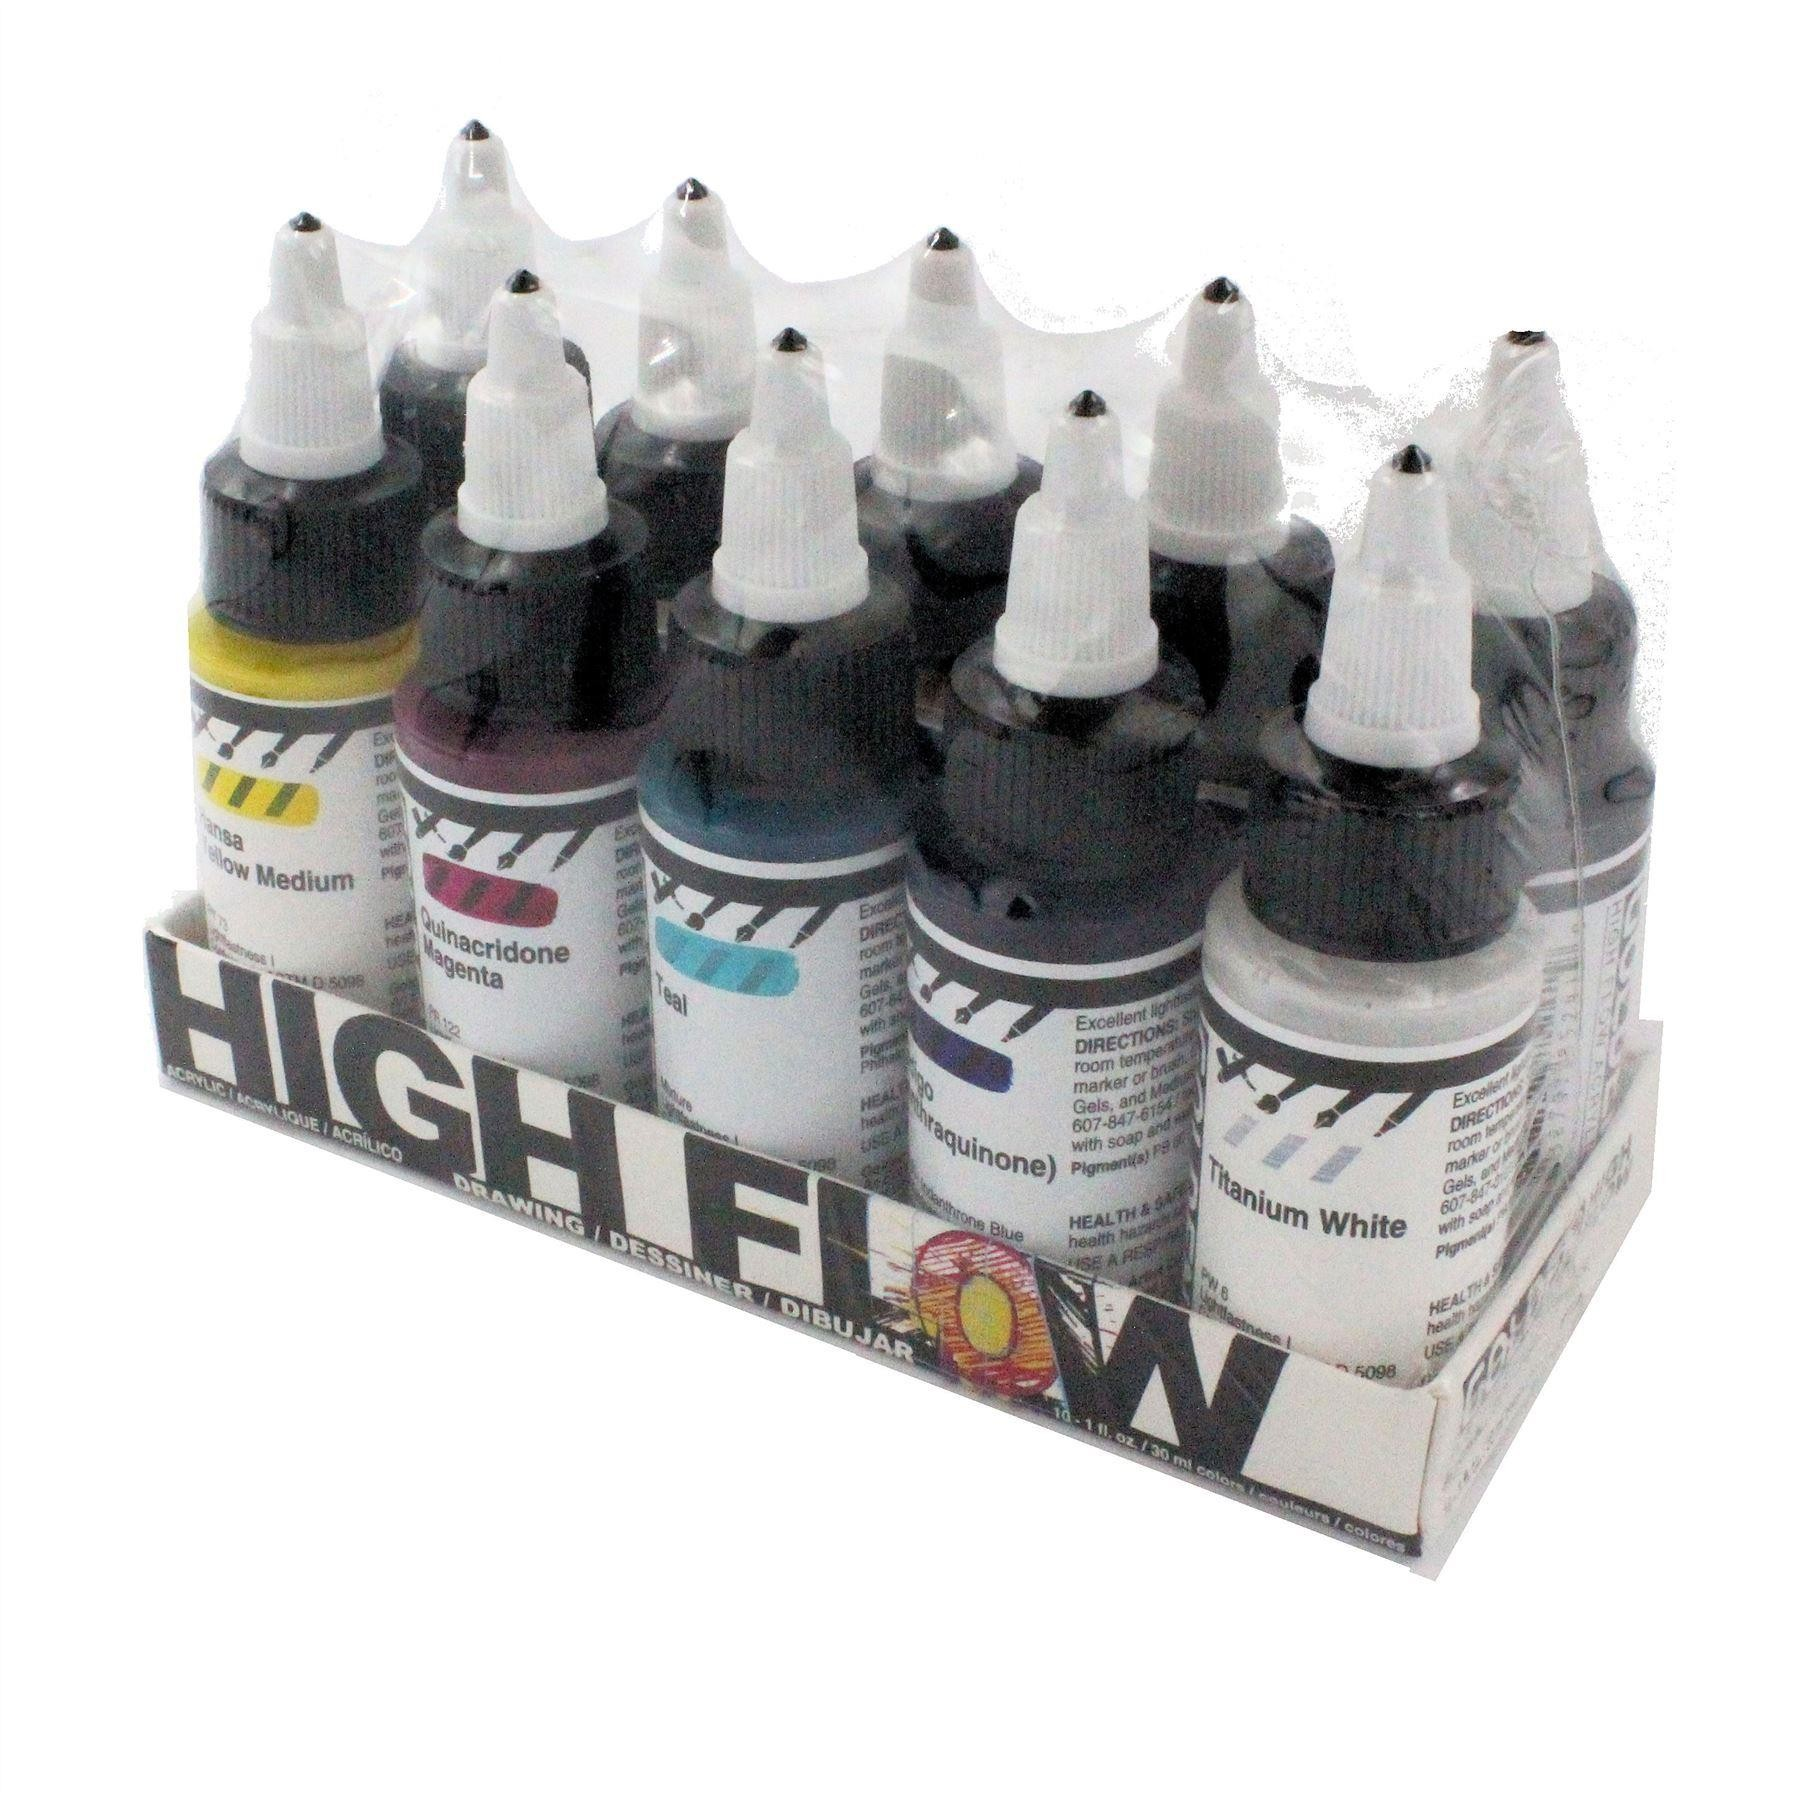 Golden high flow acrylic drawing set 10x30ml bottles